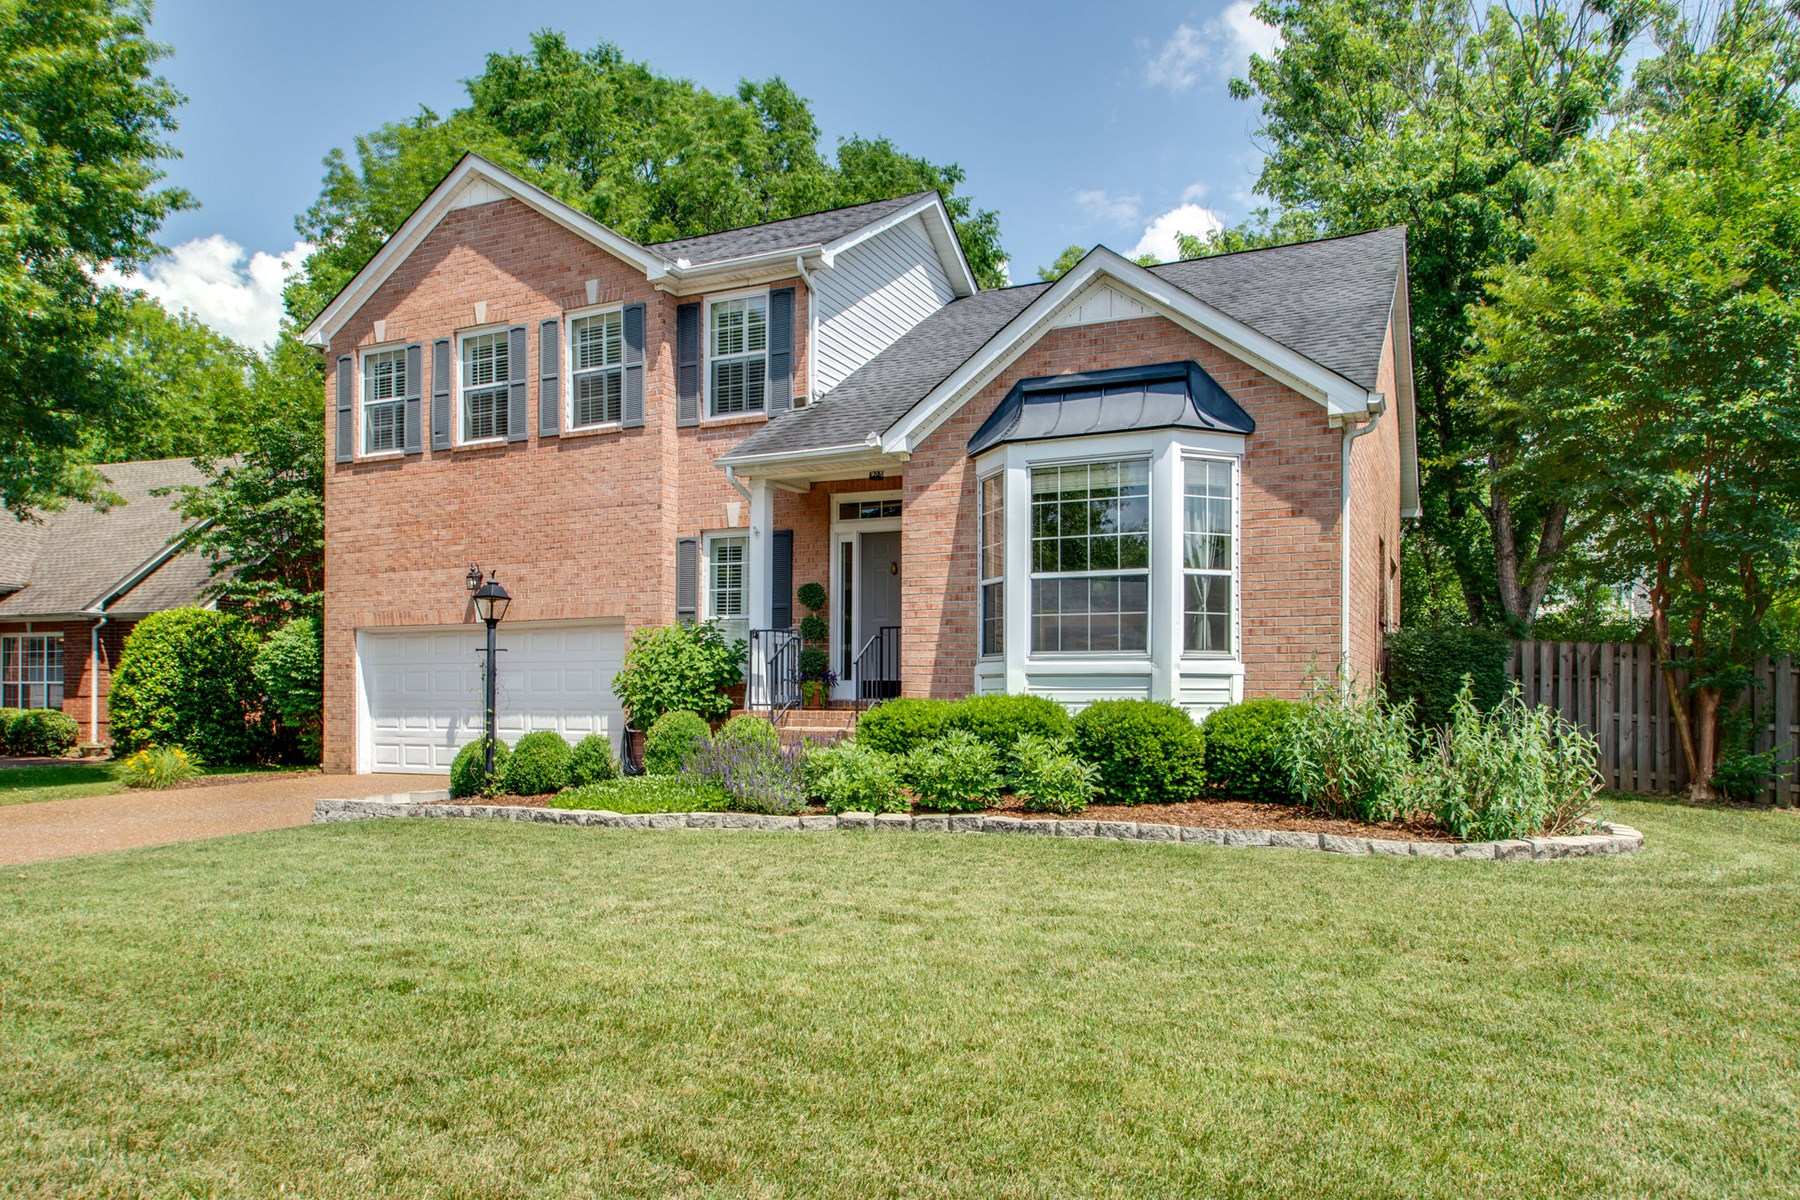 Home For Sale in West Nashville, Davidson Co.